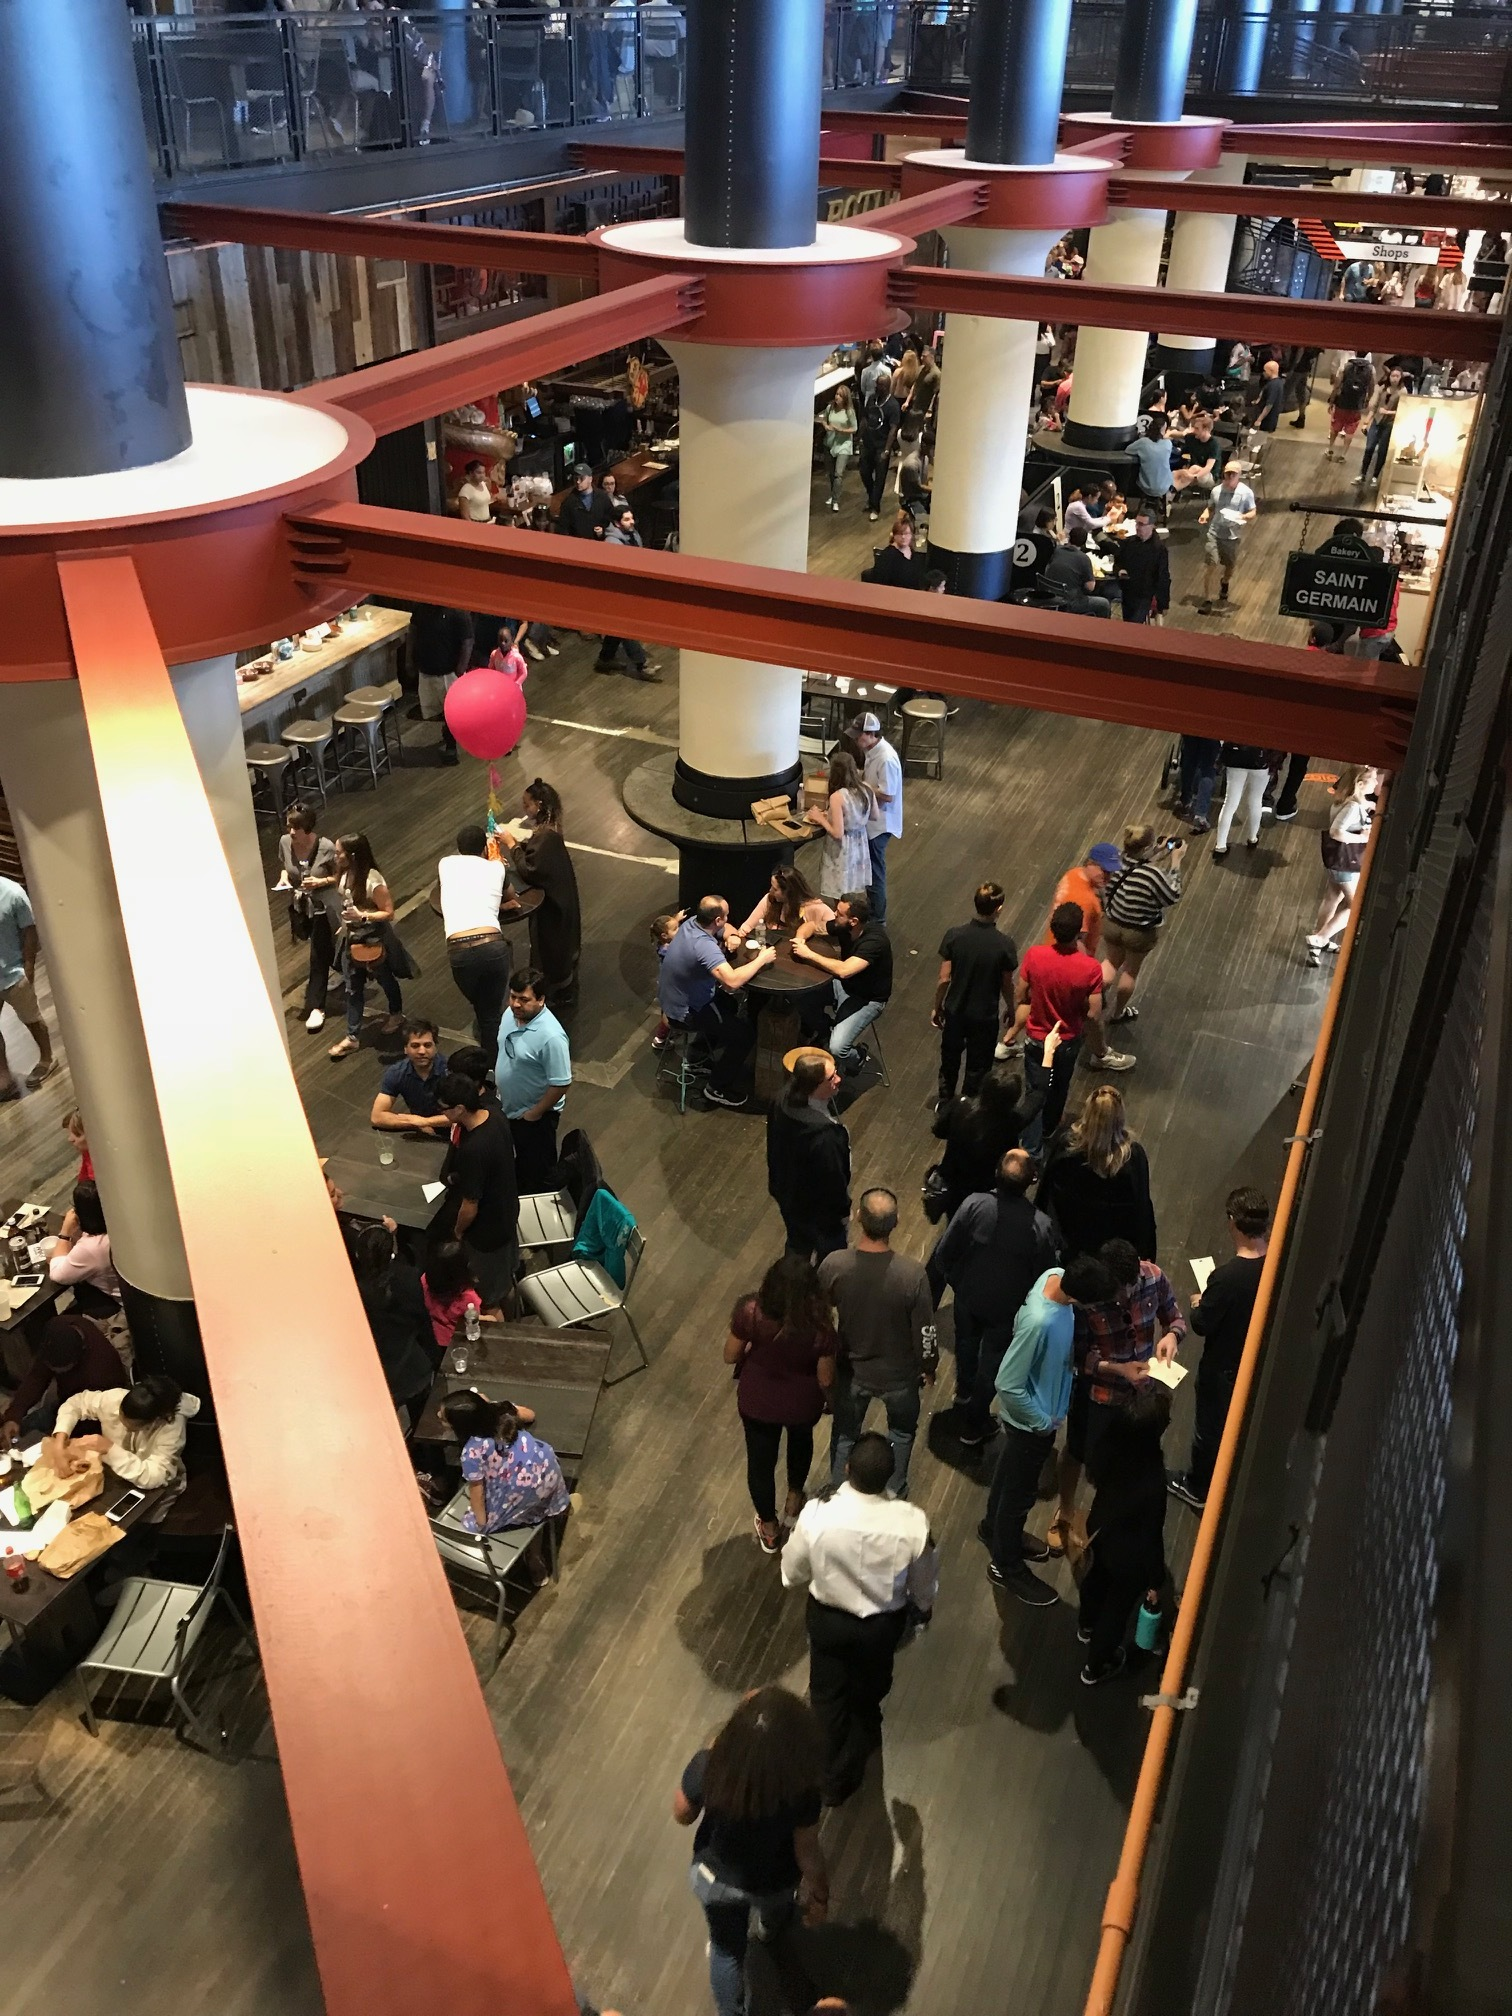 Ponce City Market is a popular place on weekend to meet up with friends.